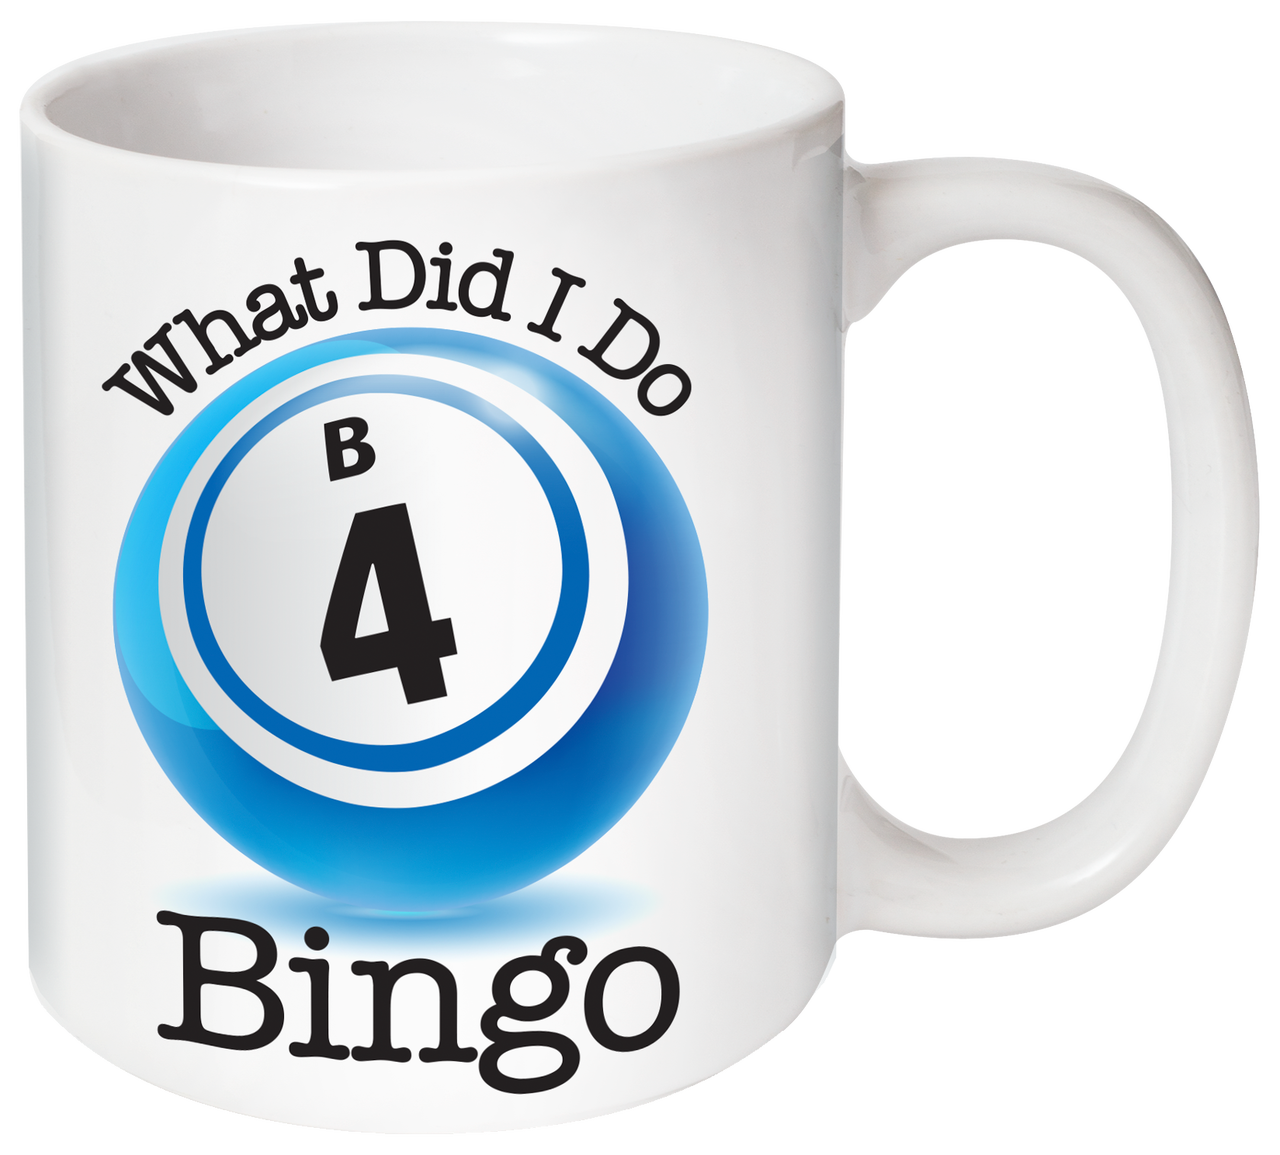 What Did I Do B-4 Bingo Mug